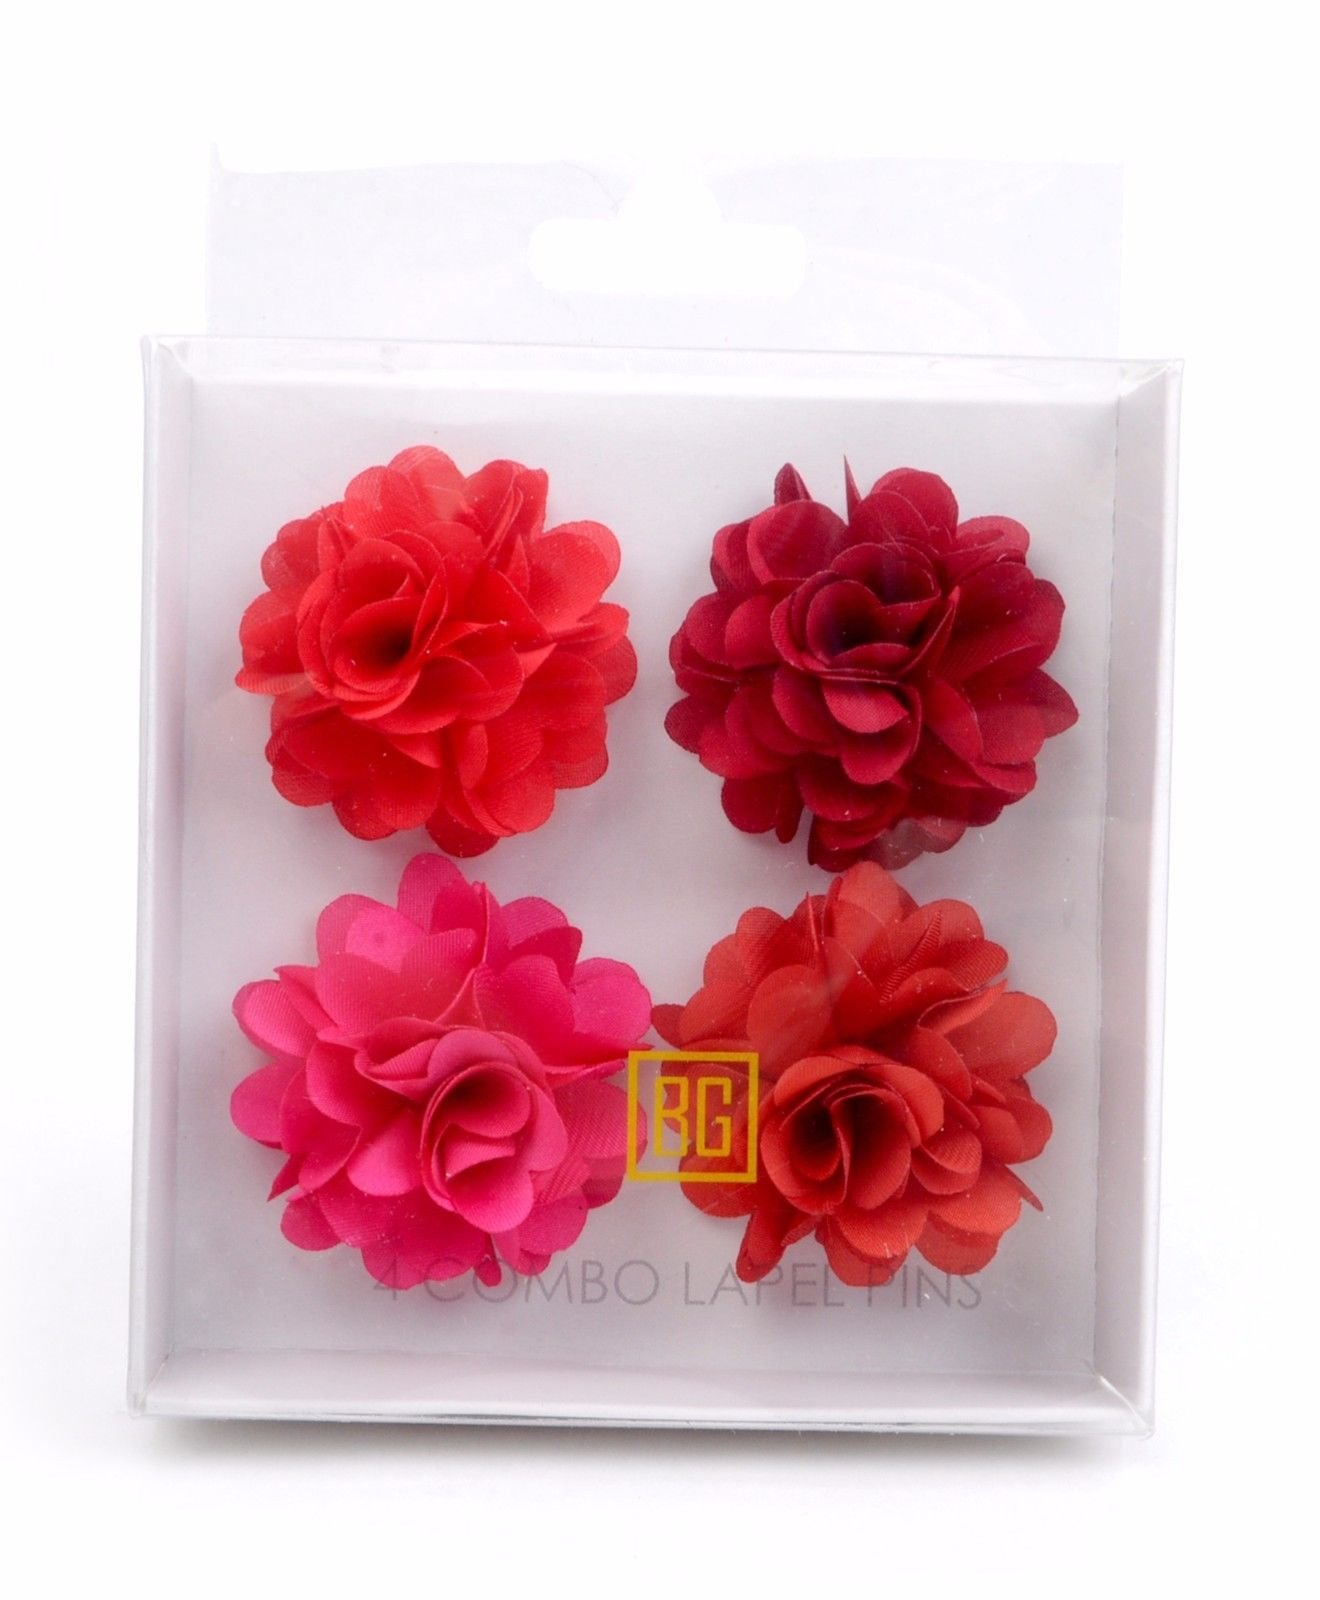 BG-Mini-Bouquet-Clutch-Back-Flower-Tuxedo-Suit-Lapel-Pins-Boutonniere-4-Pack-Set thumbnail 11